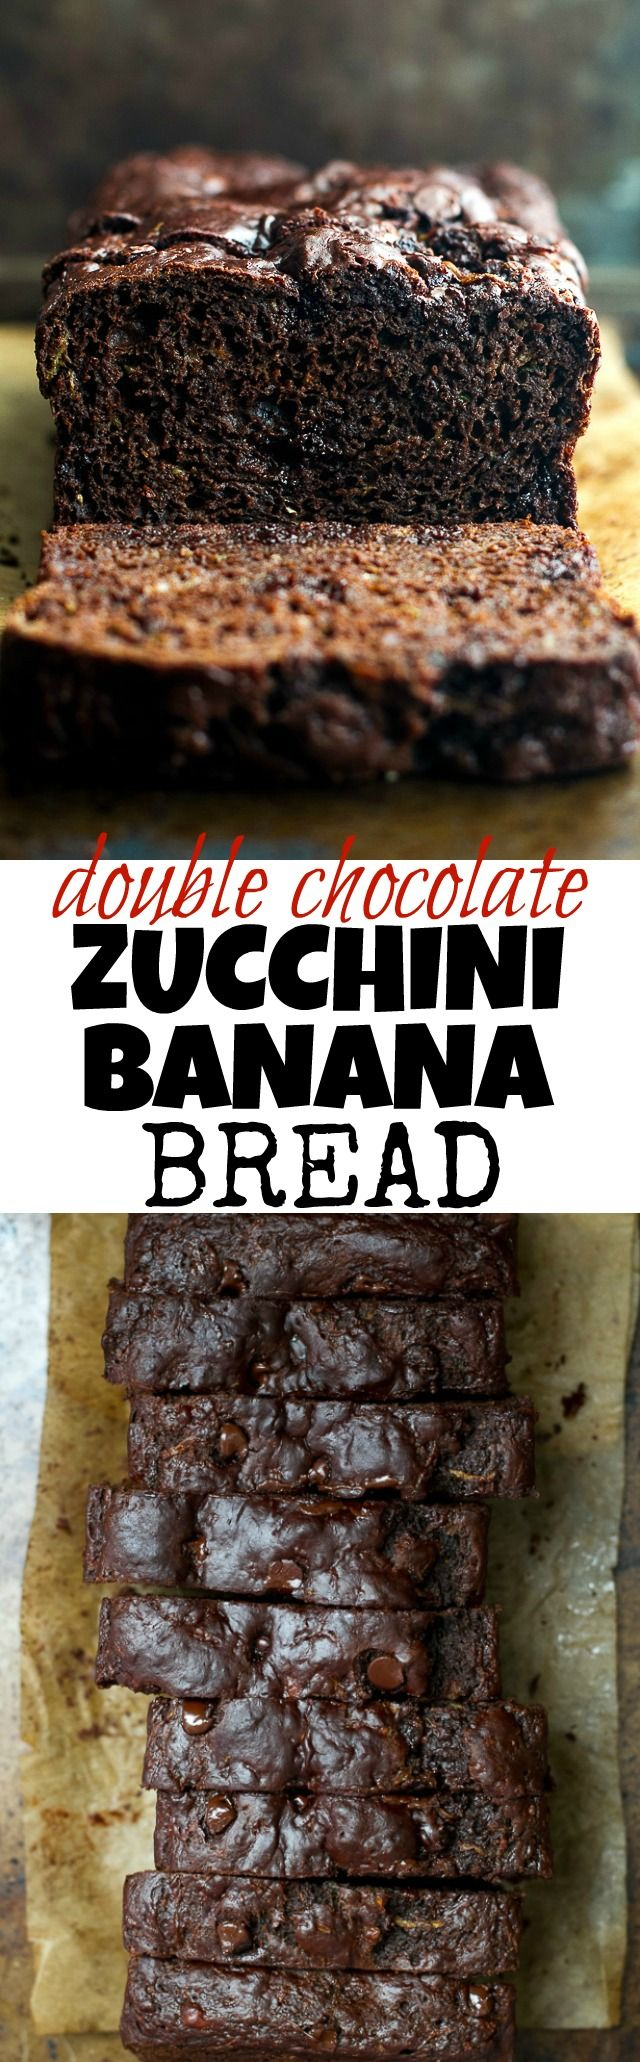 Double Chocolate Zucchini Banana Bread - zucchini, bananas, and Greek yogurt keep this loaf extra soft without the need for any added butter or oil! This bread is so tender and flavourful, you'd never guess it's healthy!